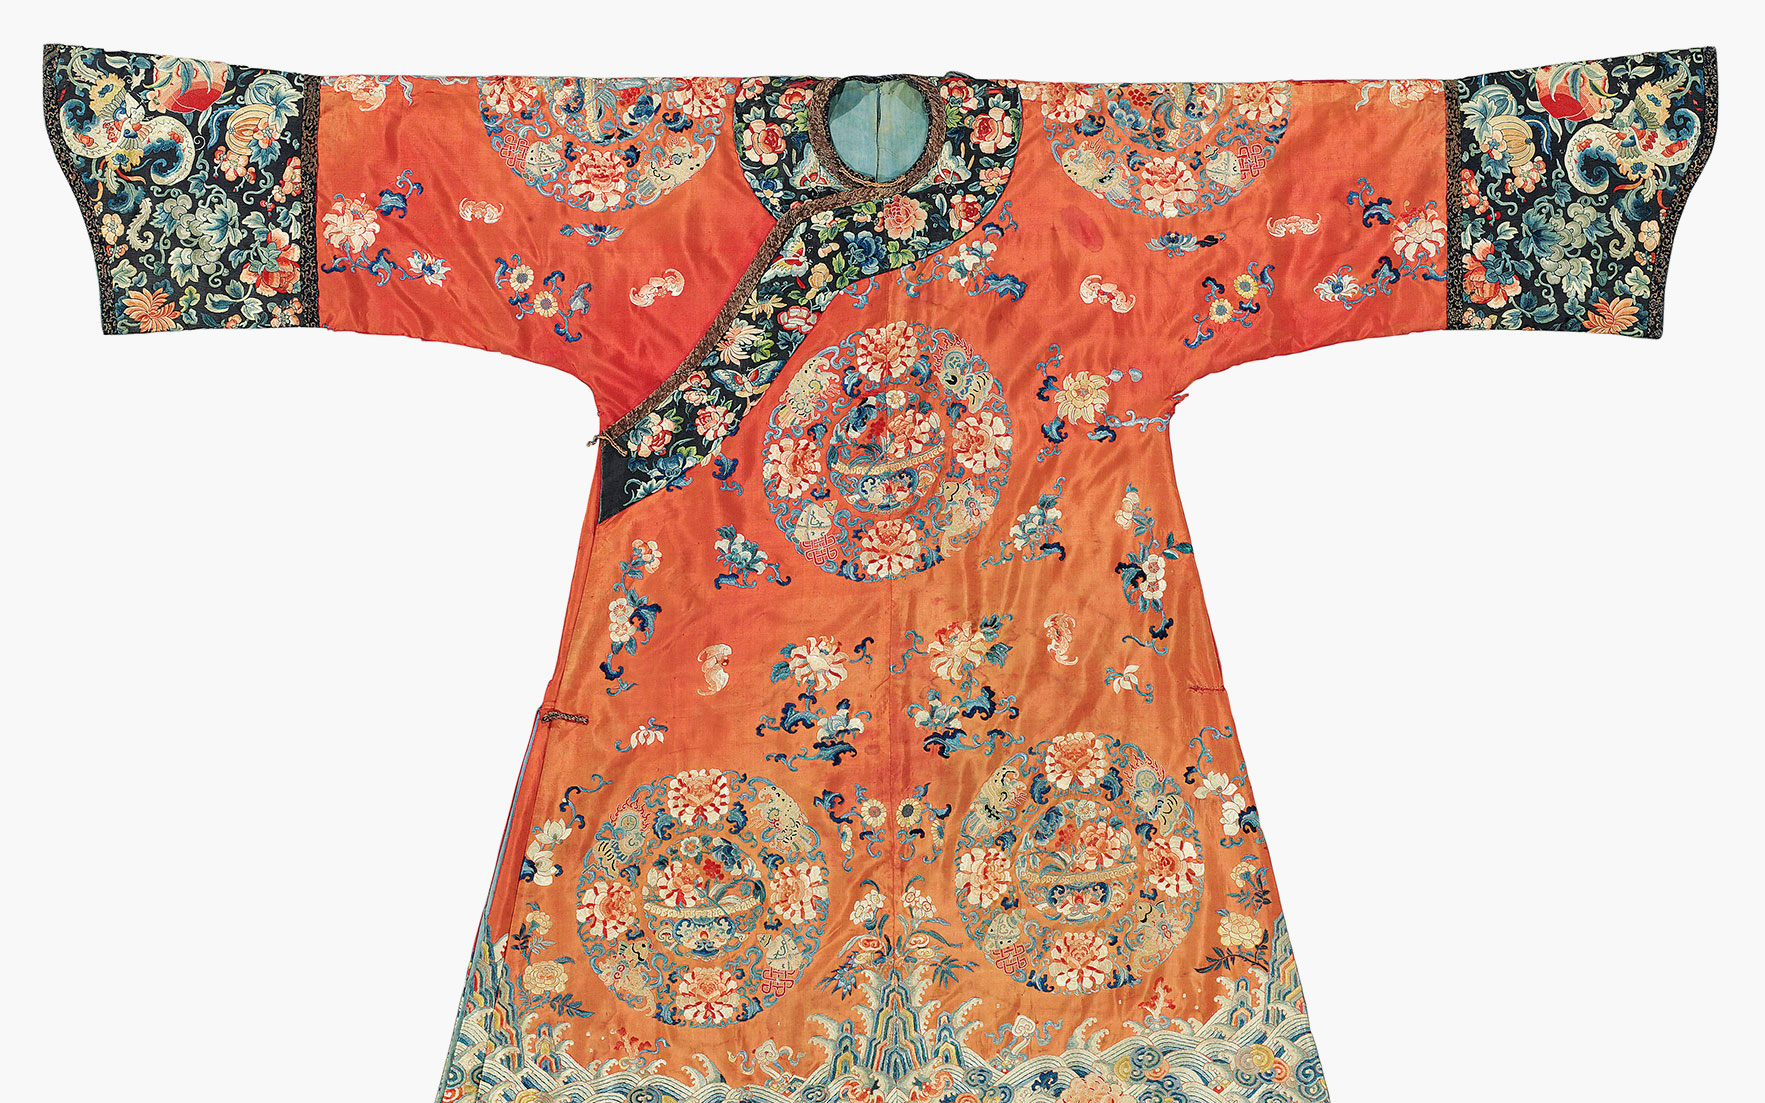 Collecting guide: Chinese robe